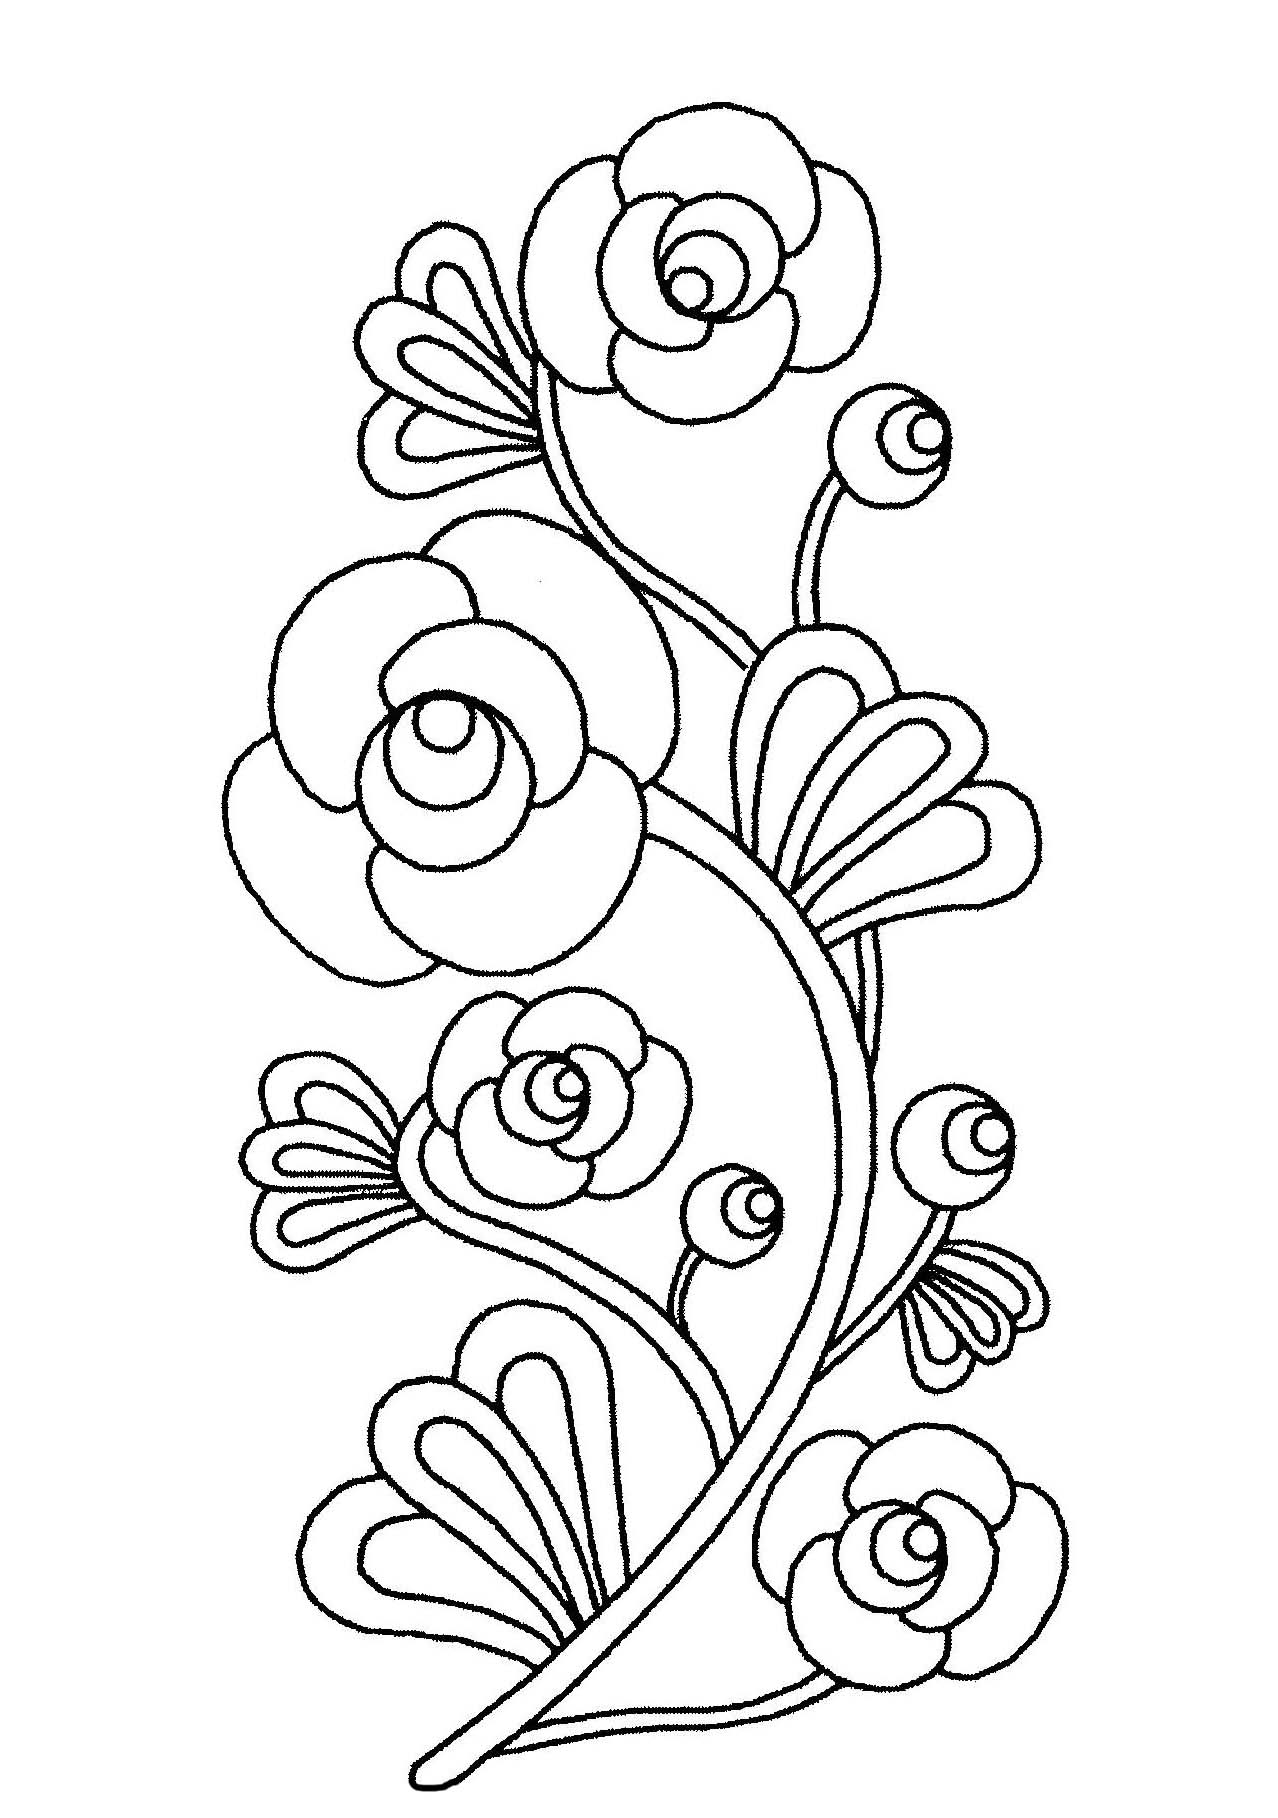 1278x1818 Beautiful Flowers Coloring Pages For Kids To Print Amp Color